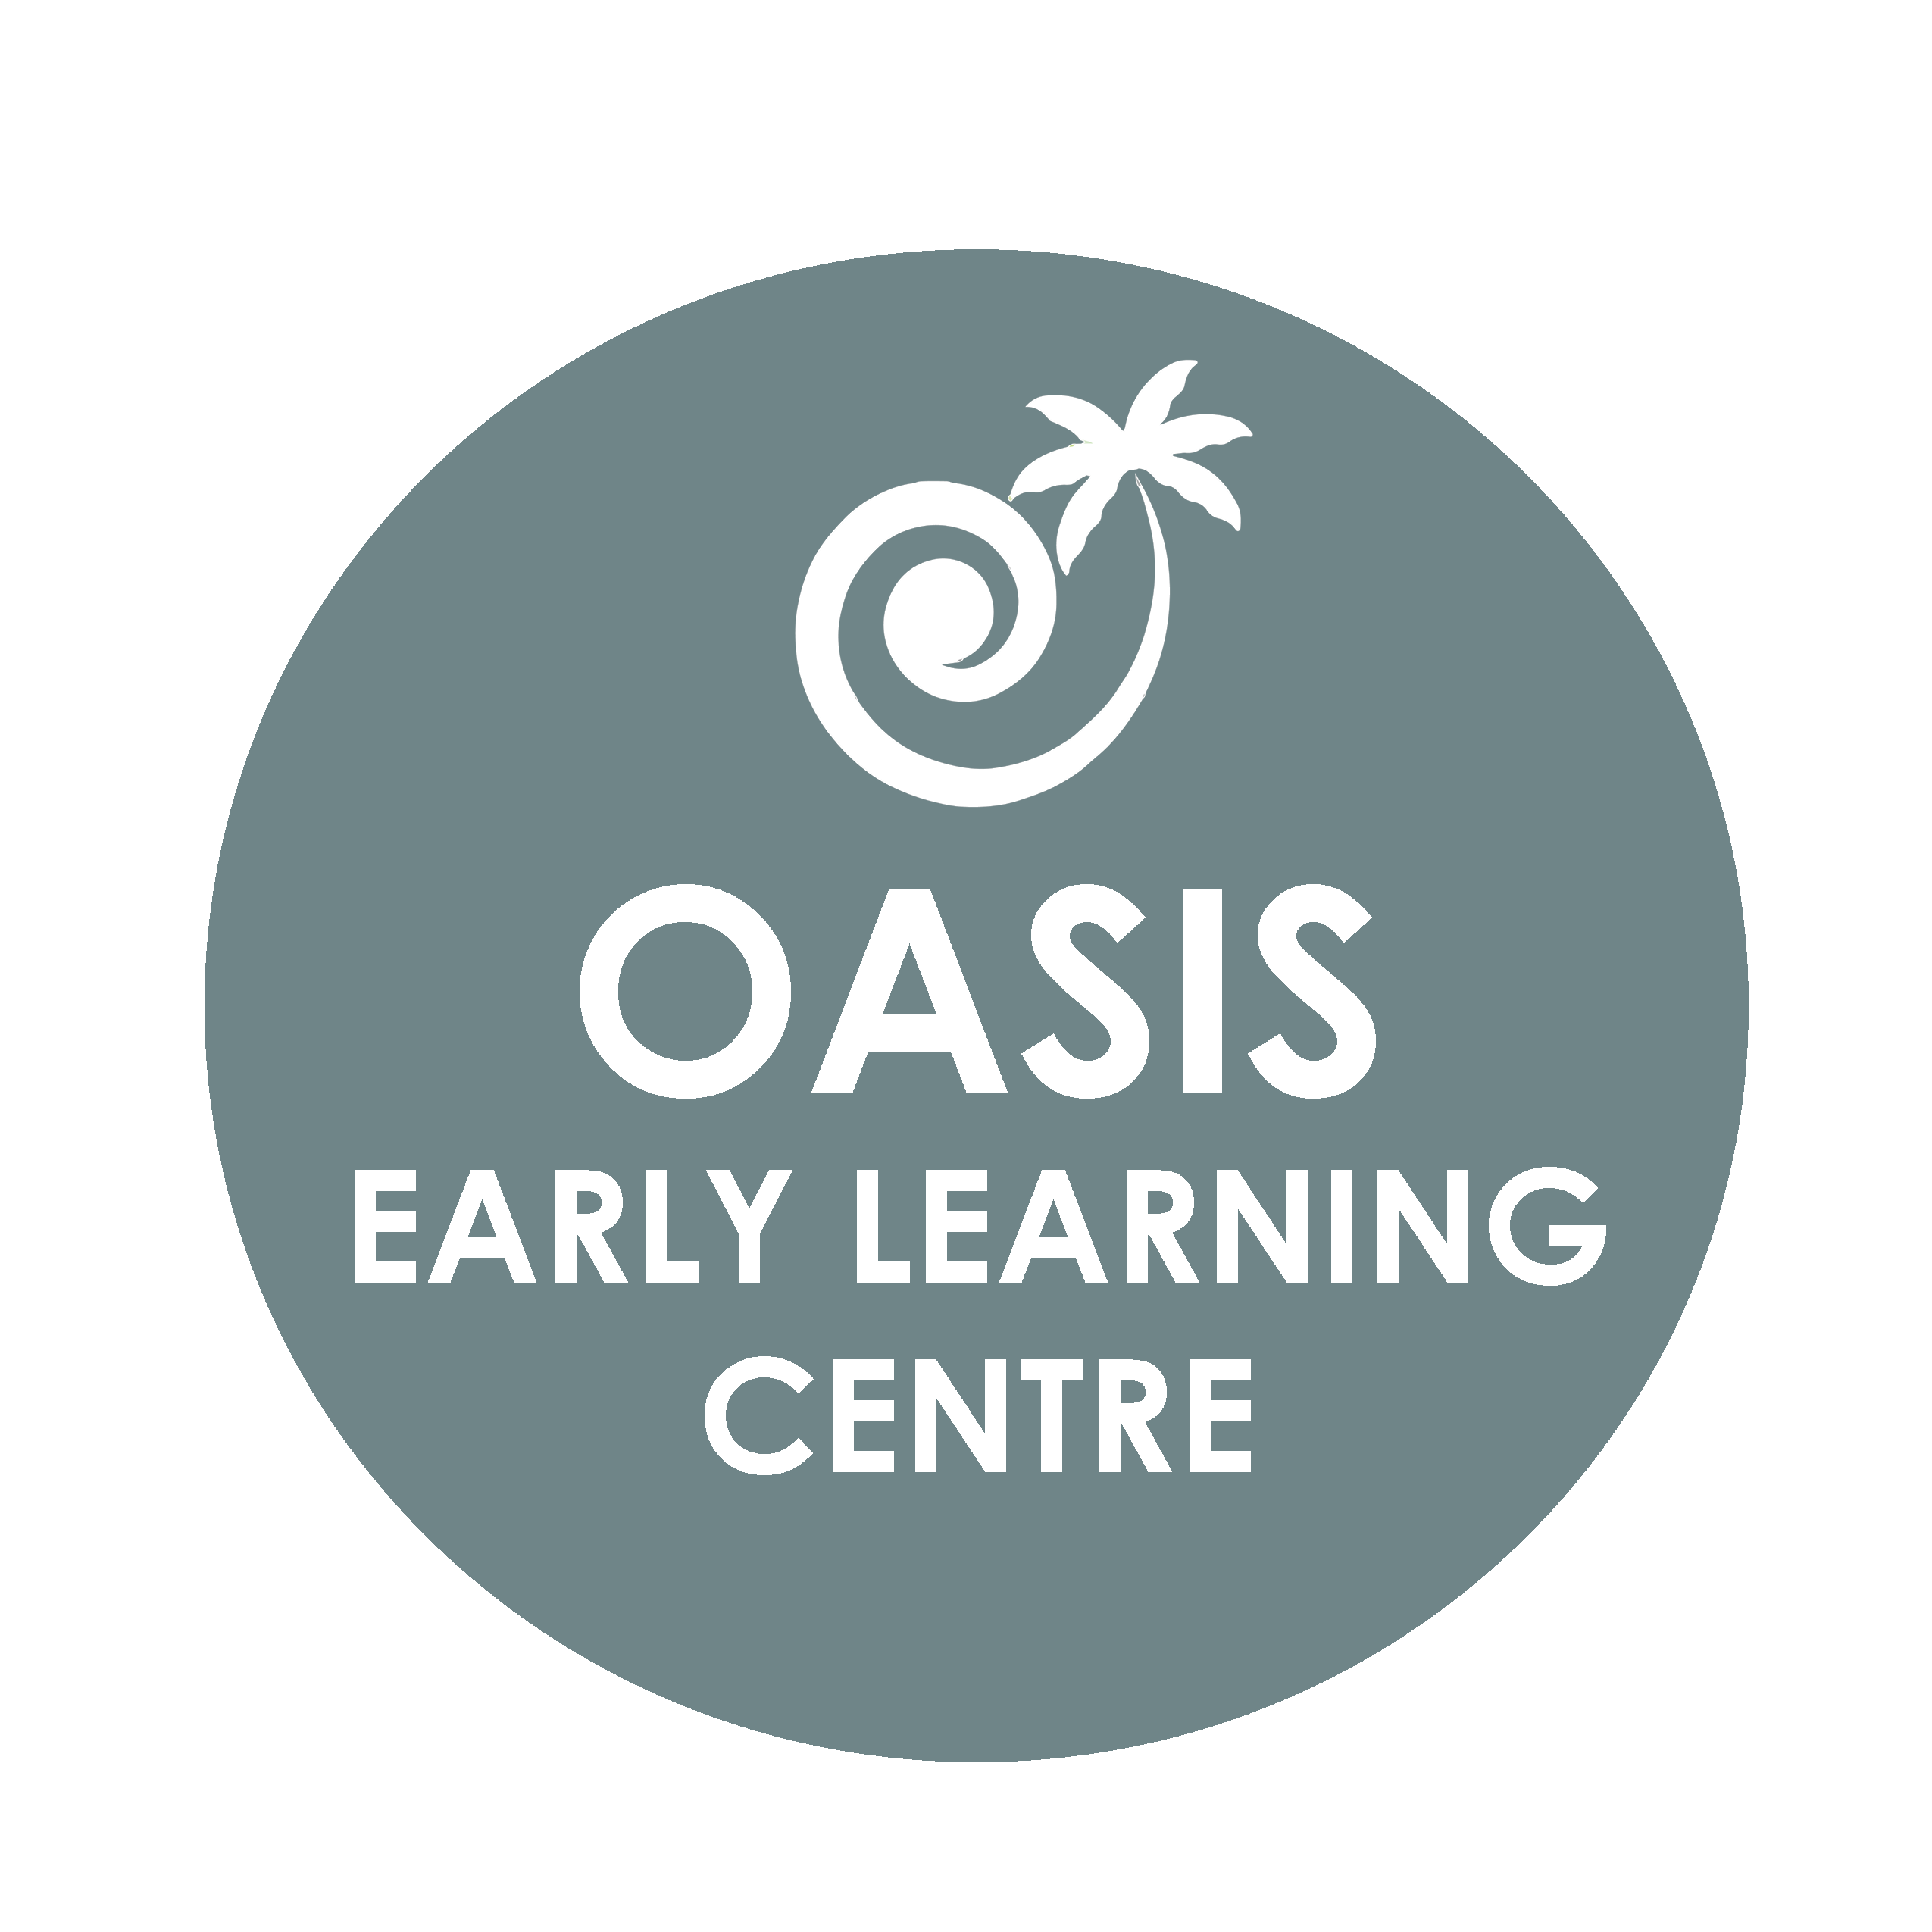 Oasis Early Learning Centre